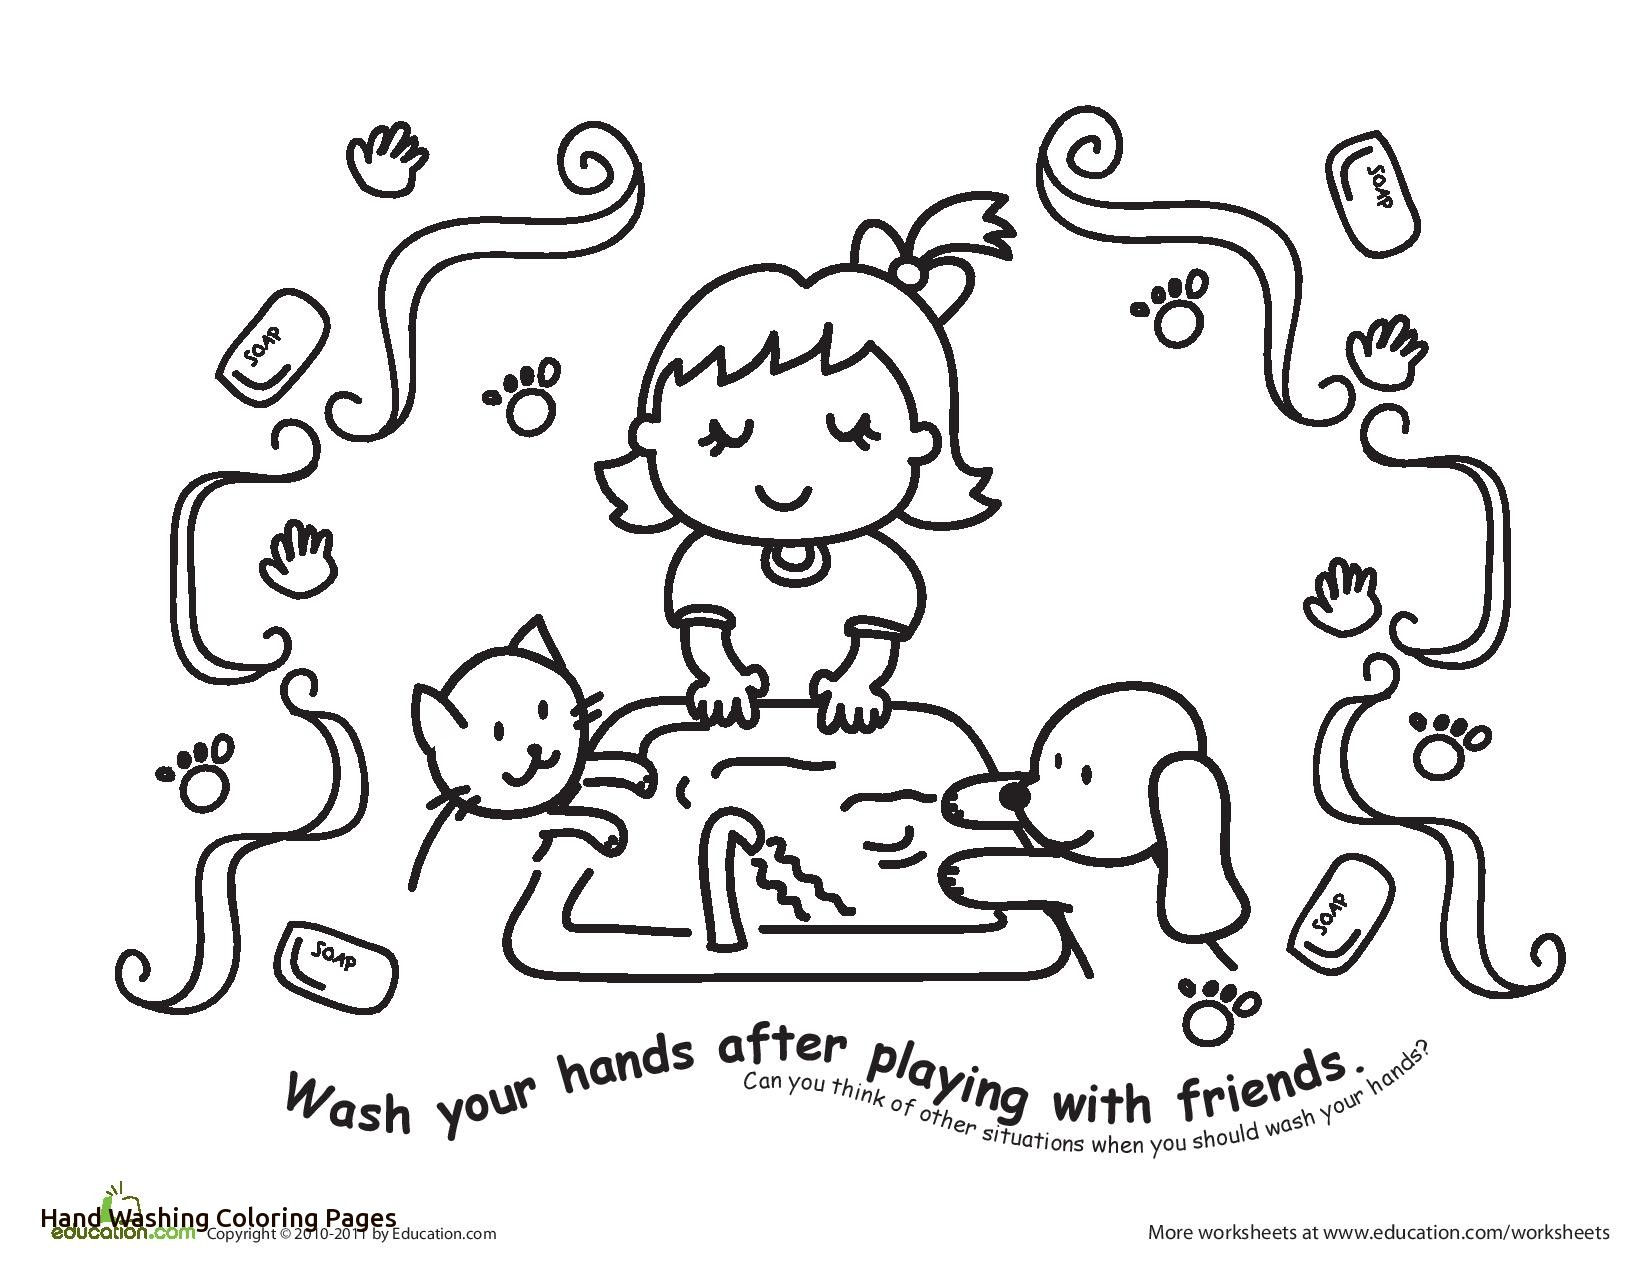 Washing Hands Drawing at GetDrawings.com | Free for personal use ...